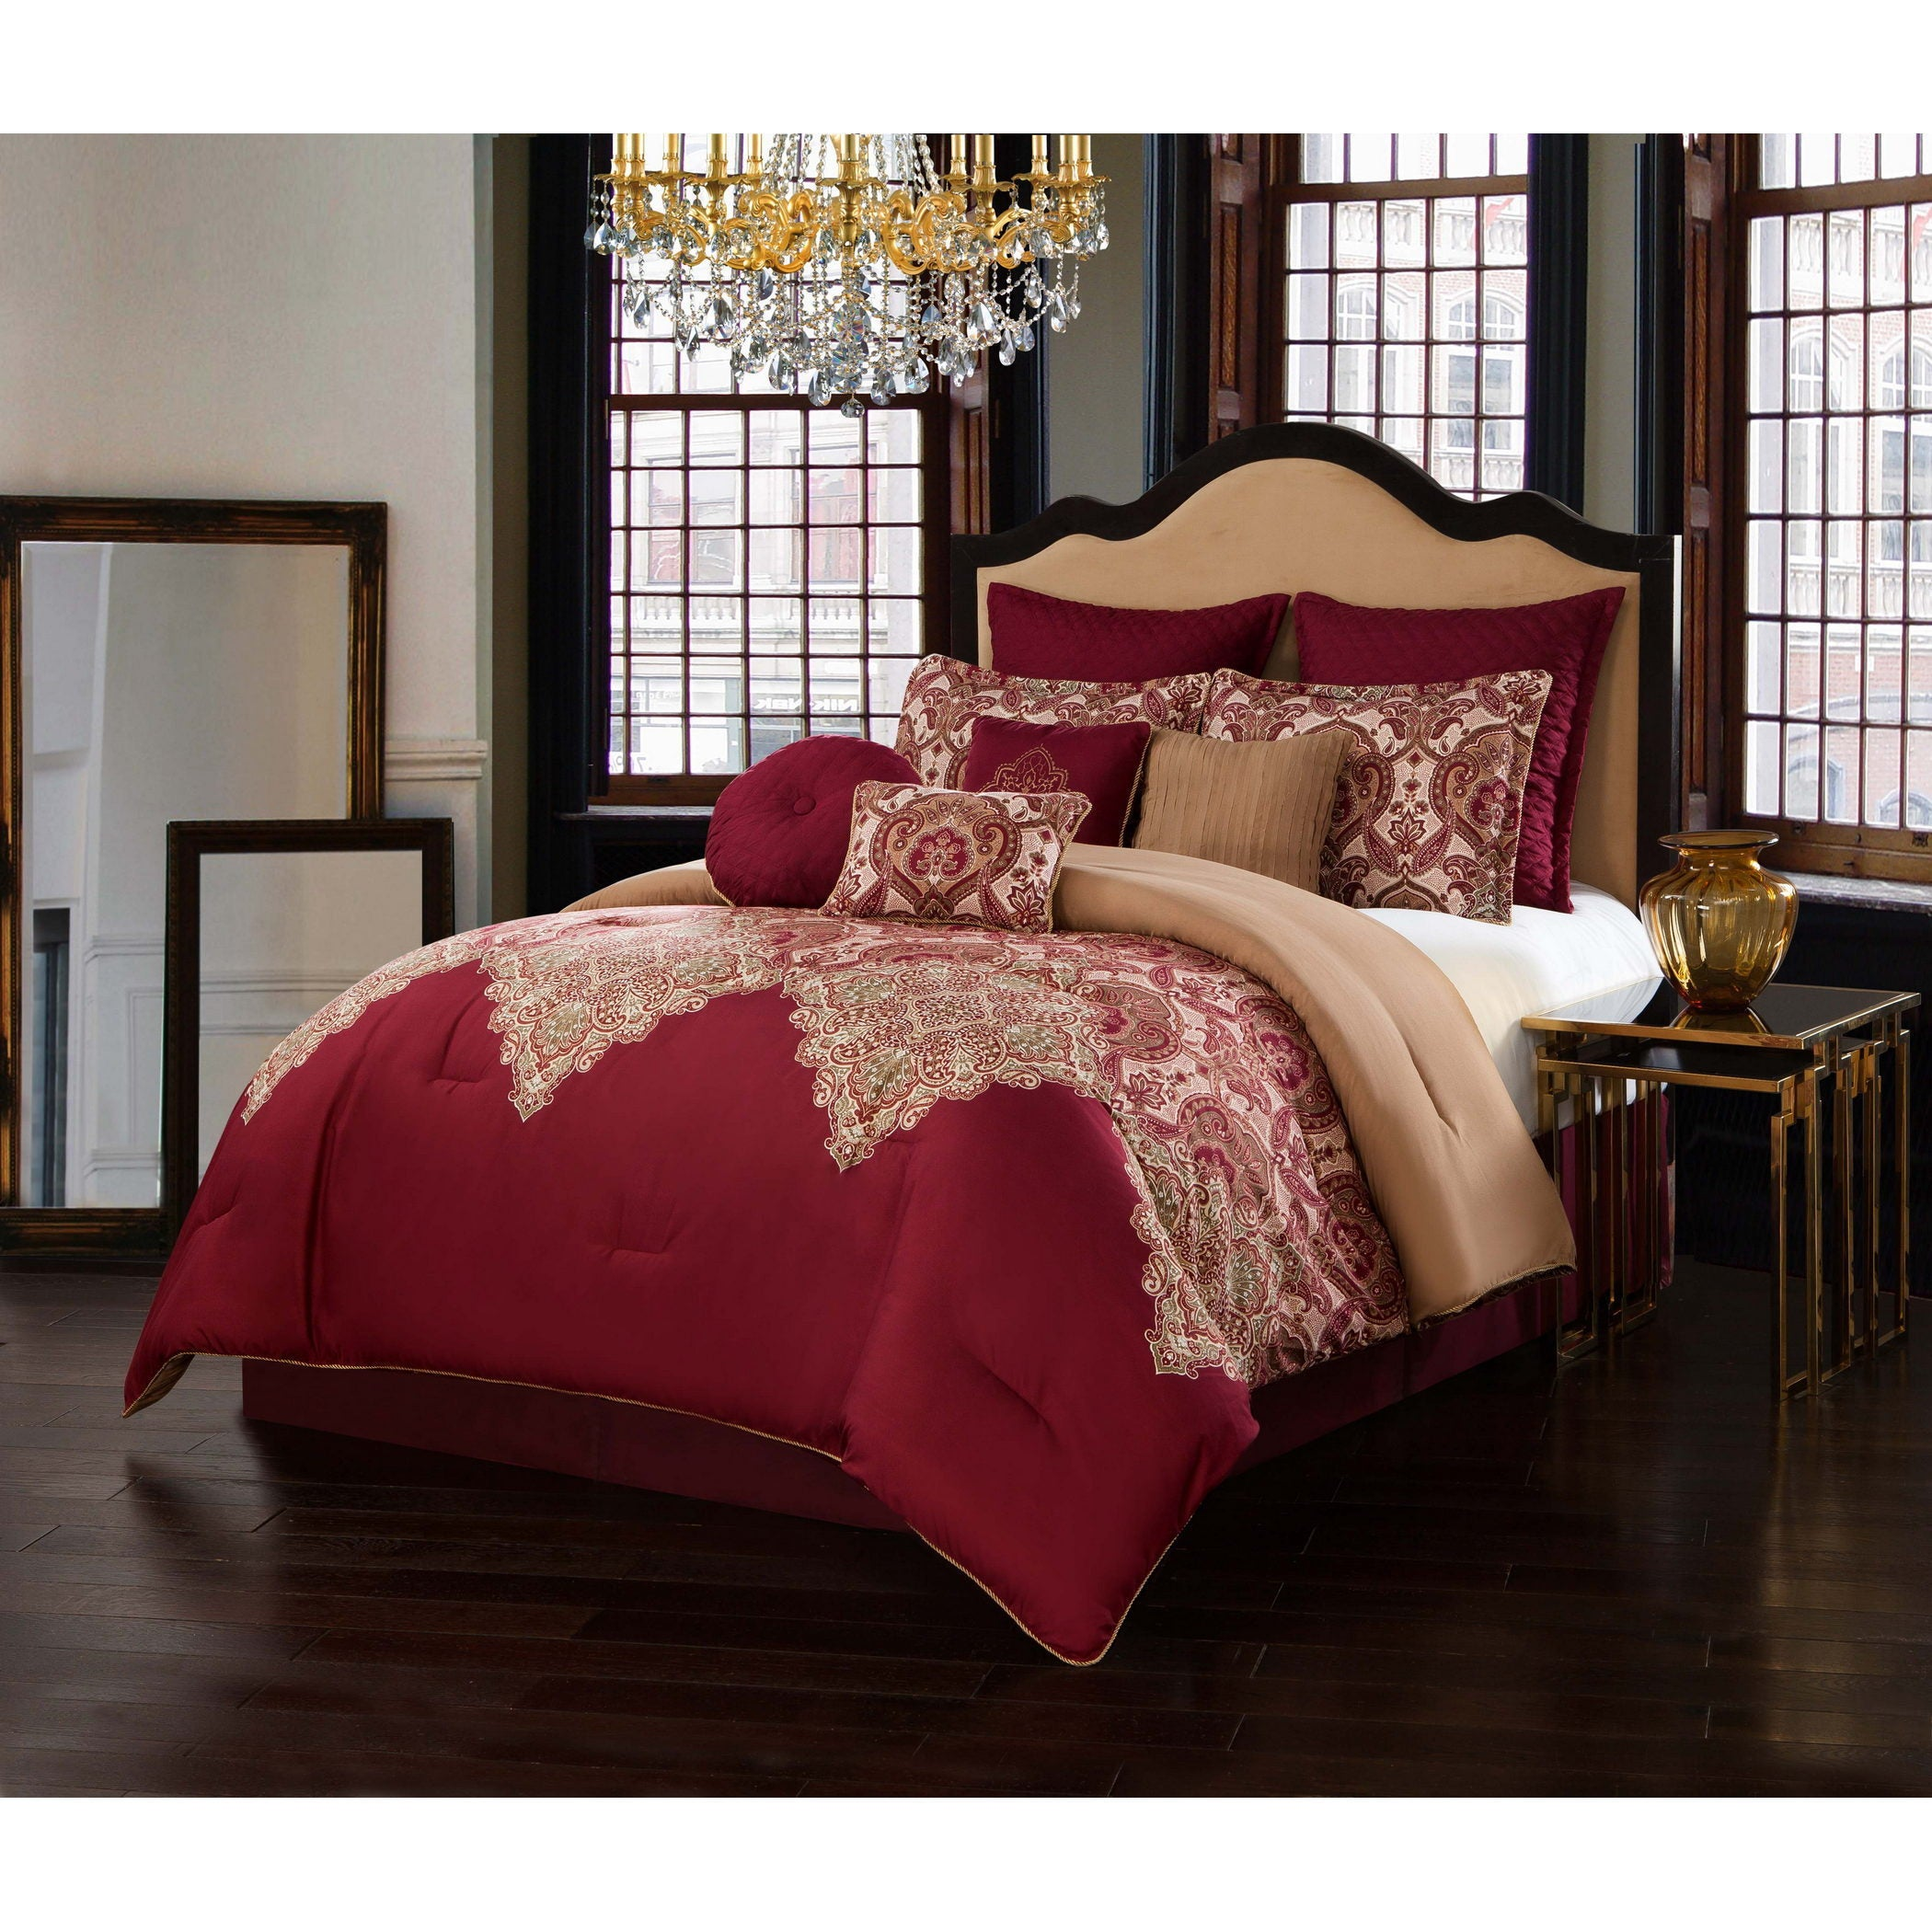 cal cheap branches jacquard king quotations comforter size wisteria find queen shopping burgundy set piece get guides